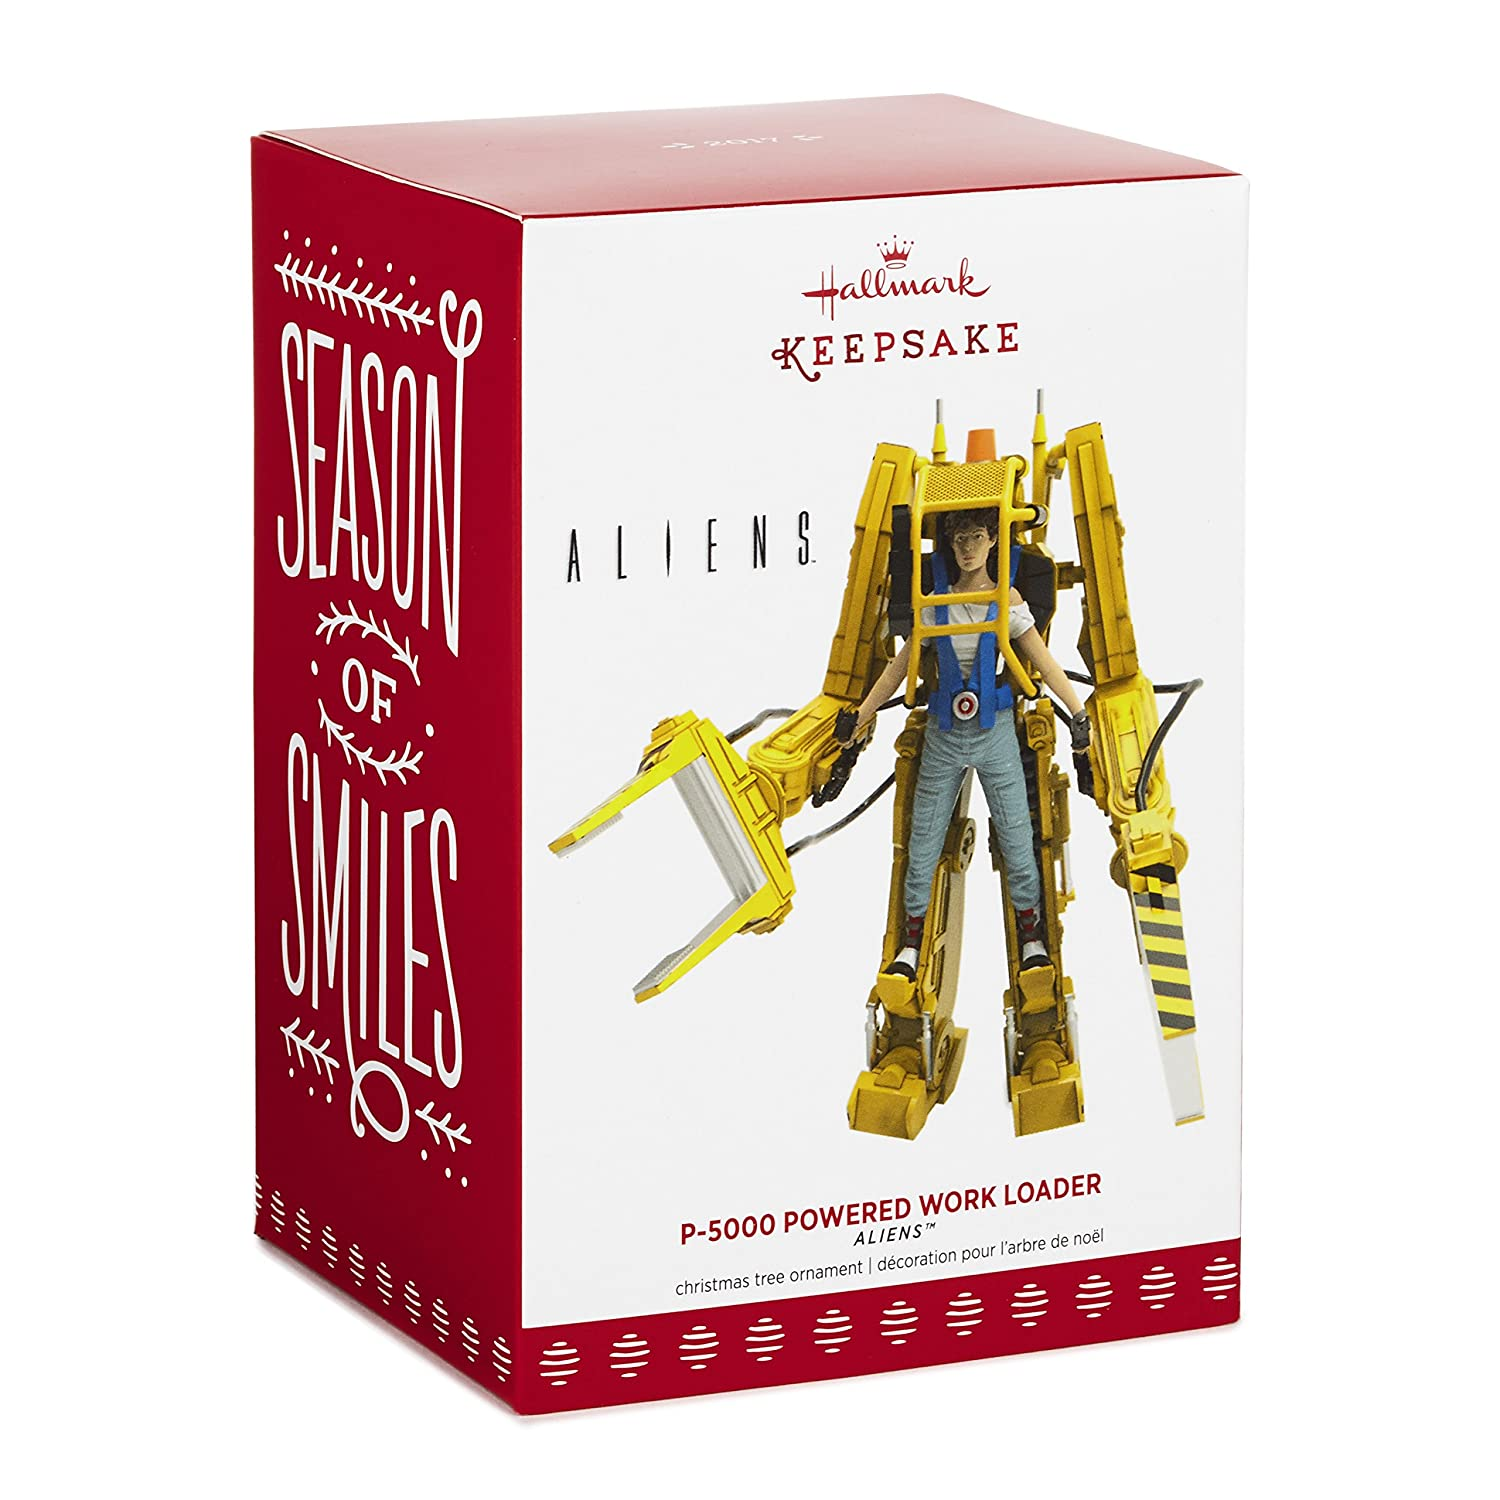 Amazon.com: Hallmark Keepsake 2017 Aliens P-5000 Powered Work Loader ...